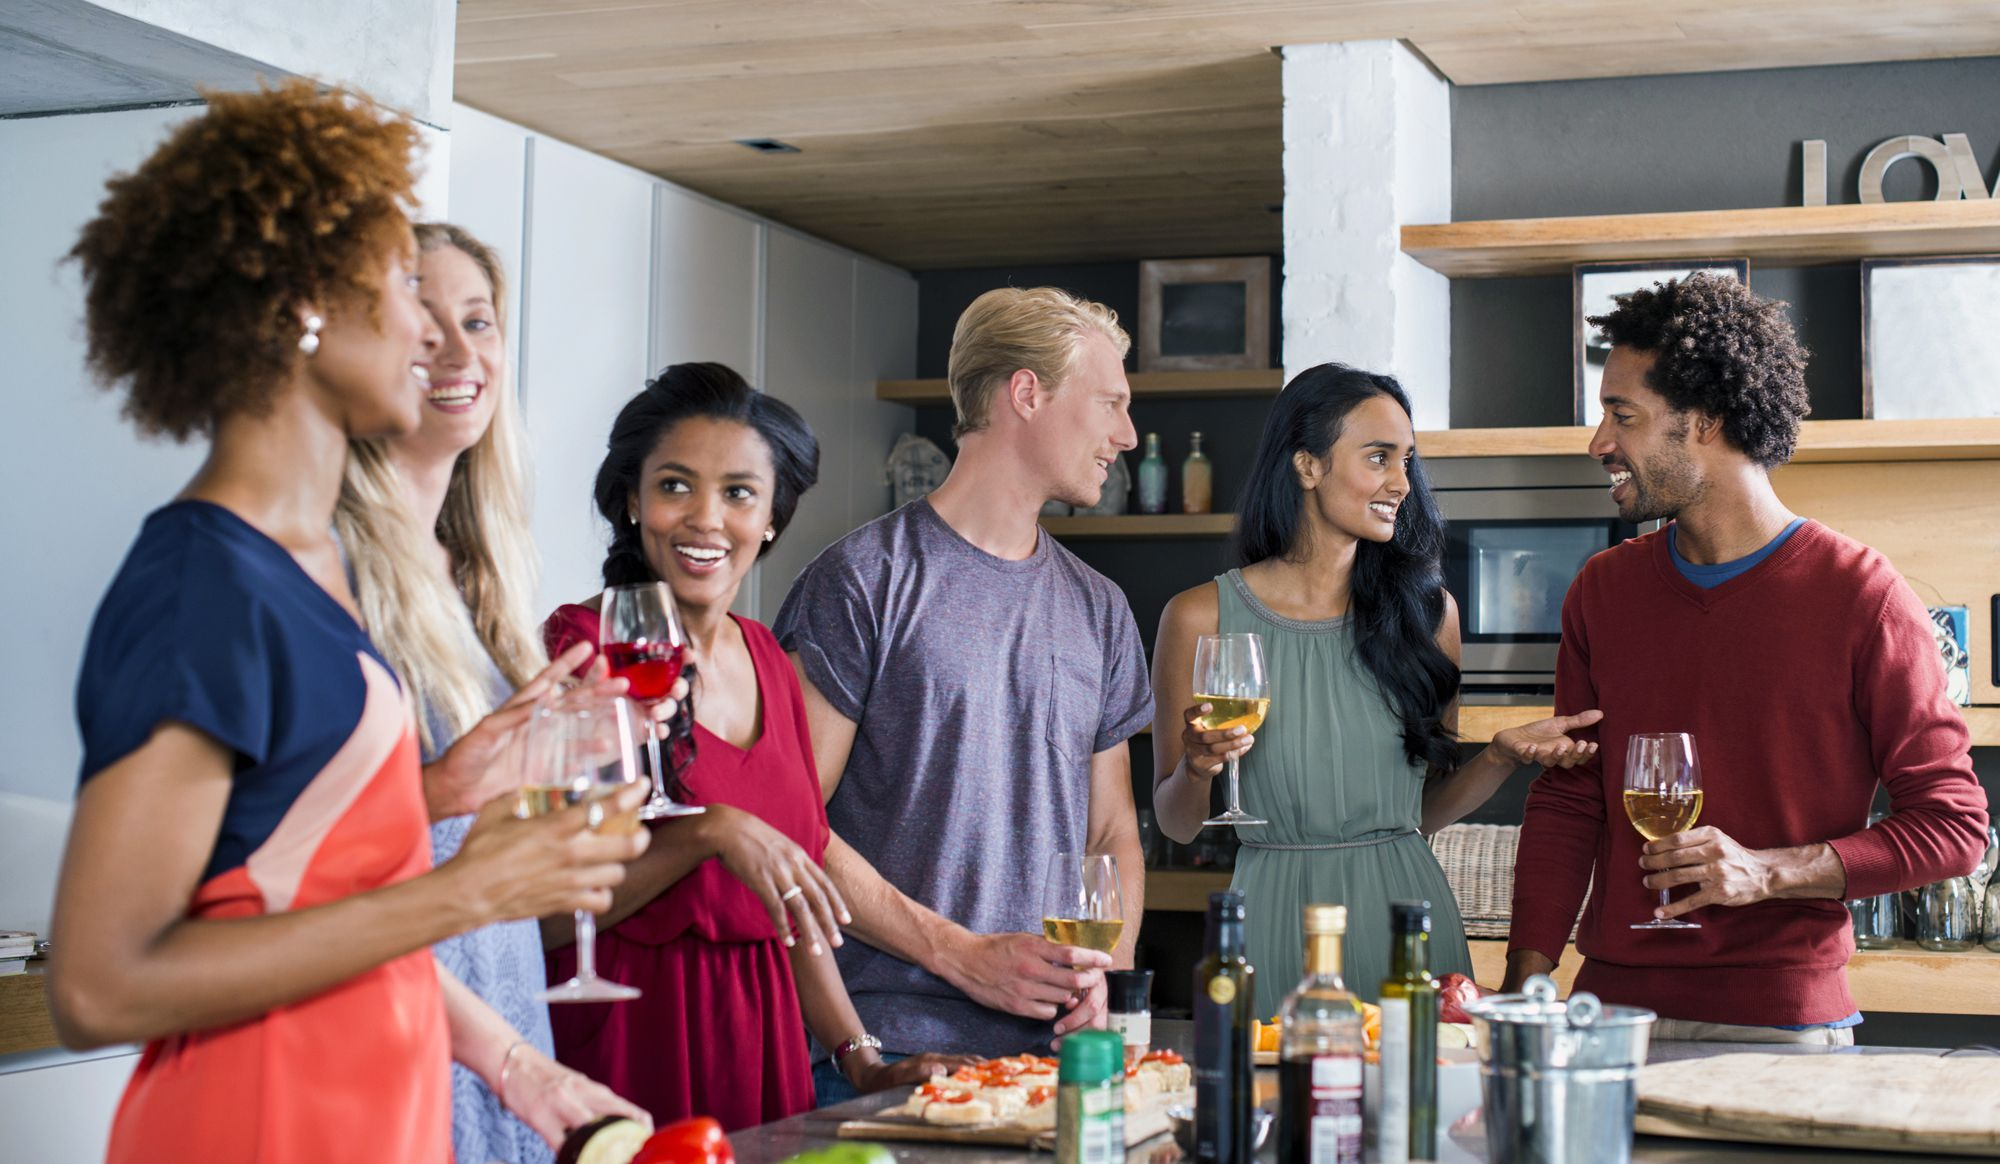 When Should You Have A Housewarming Party